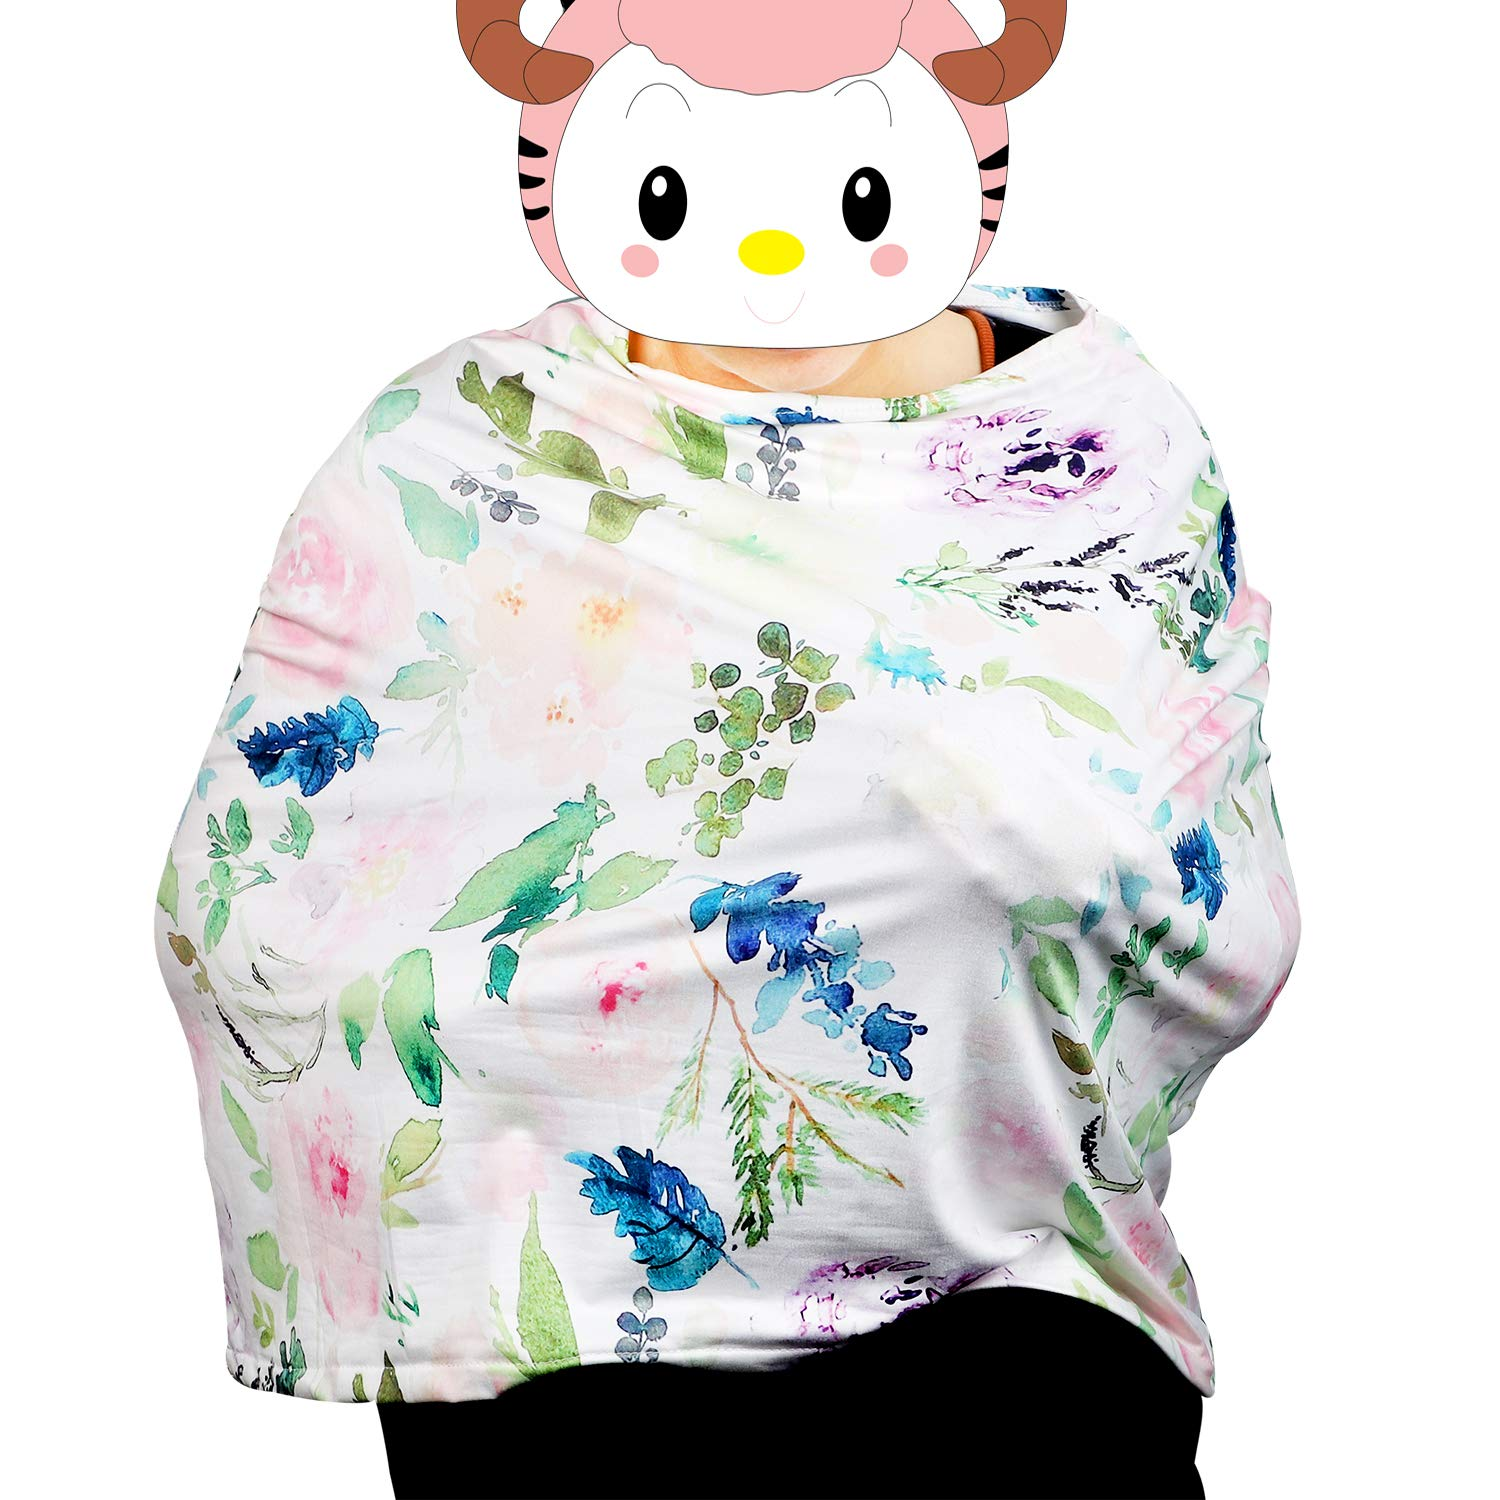 Nursing Cover Scarf for Breastfeeding Breathable Cotton Mums Breastfeeding Apron Shawl Newborn Baby Swaddle Blanket Baby Car Seat Cover Floral White Blue Flyish Breastfeeding Cover